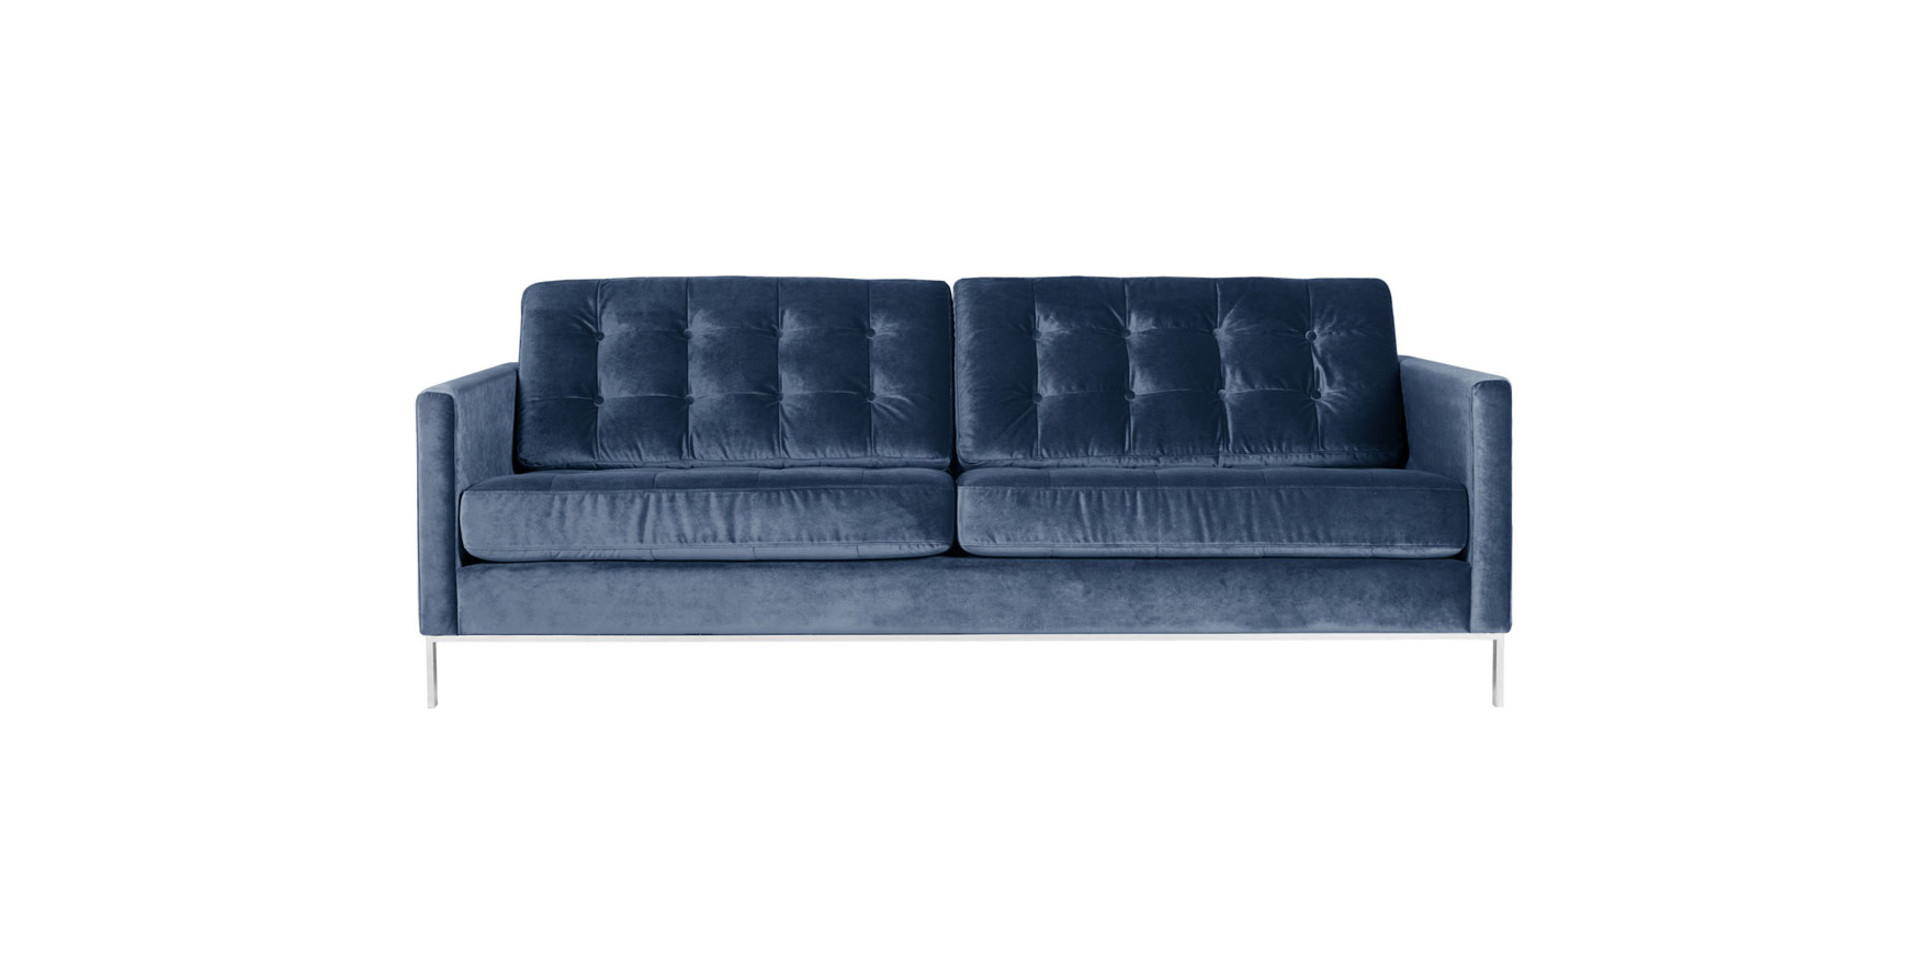 sits-kalle-canape-3seater_classic_velvet12_navy_blue_1